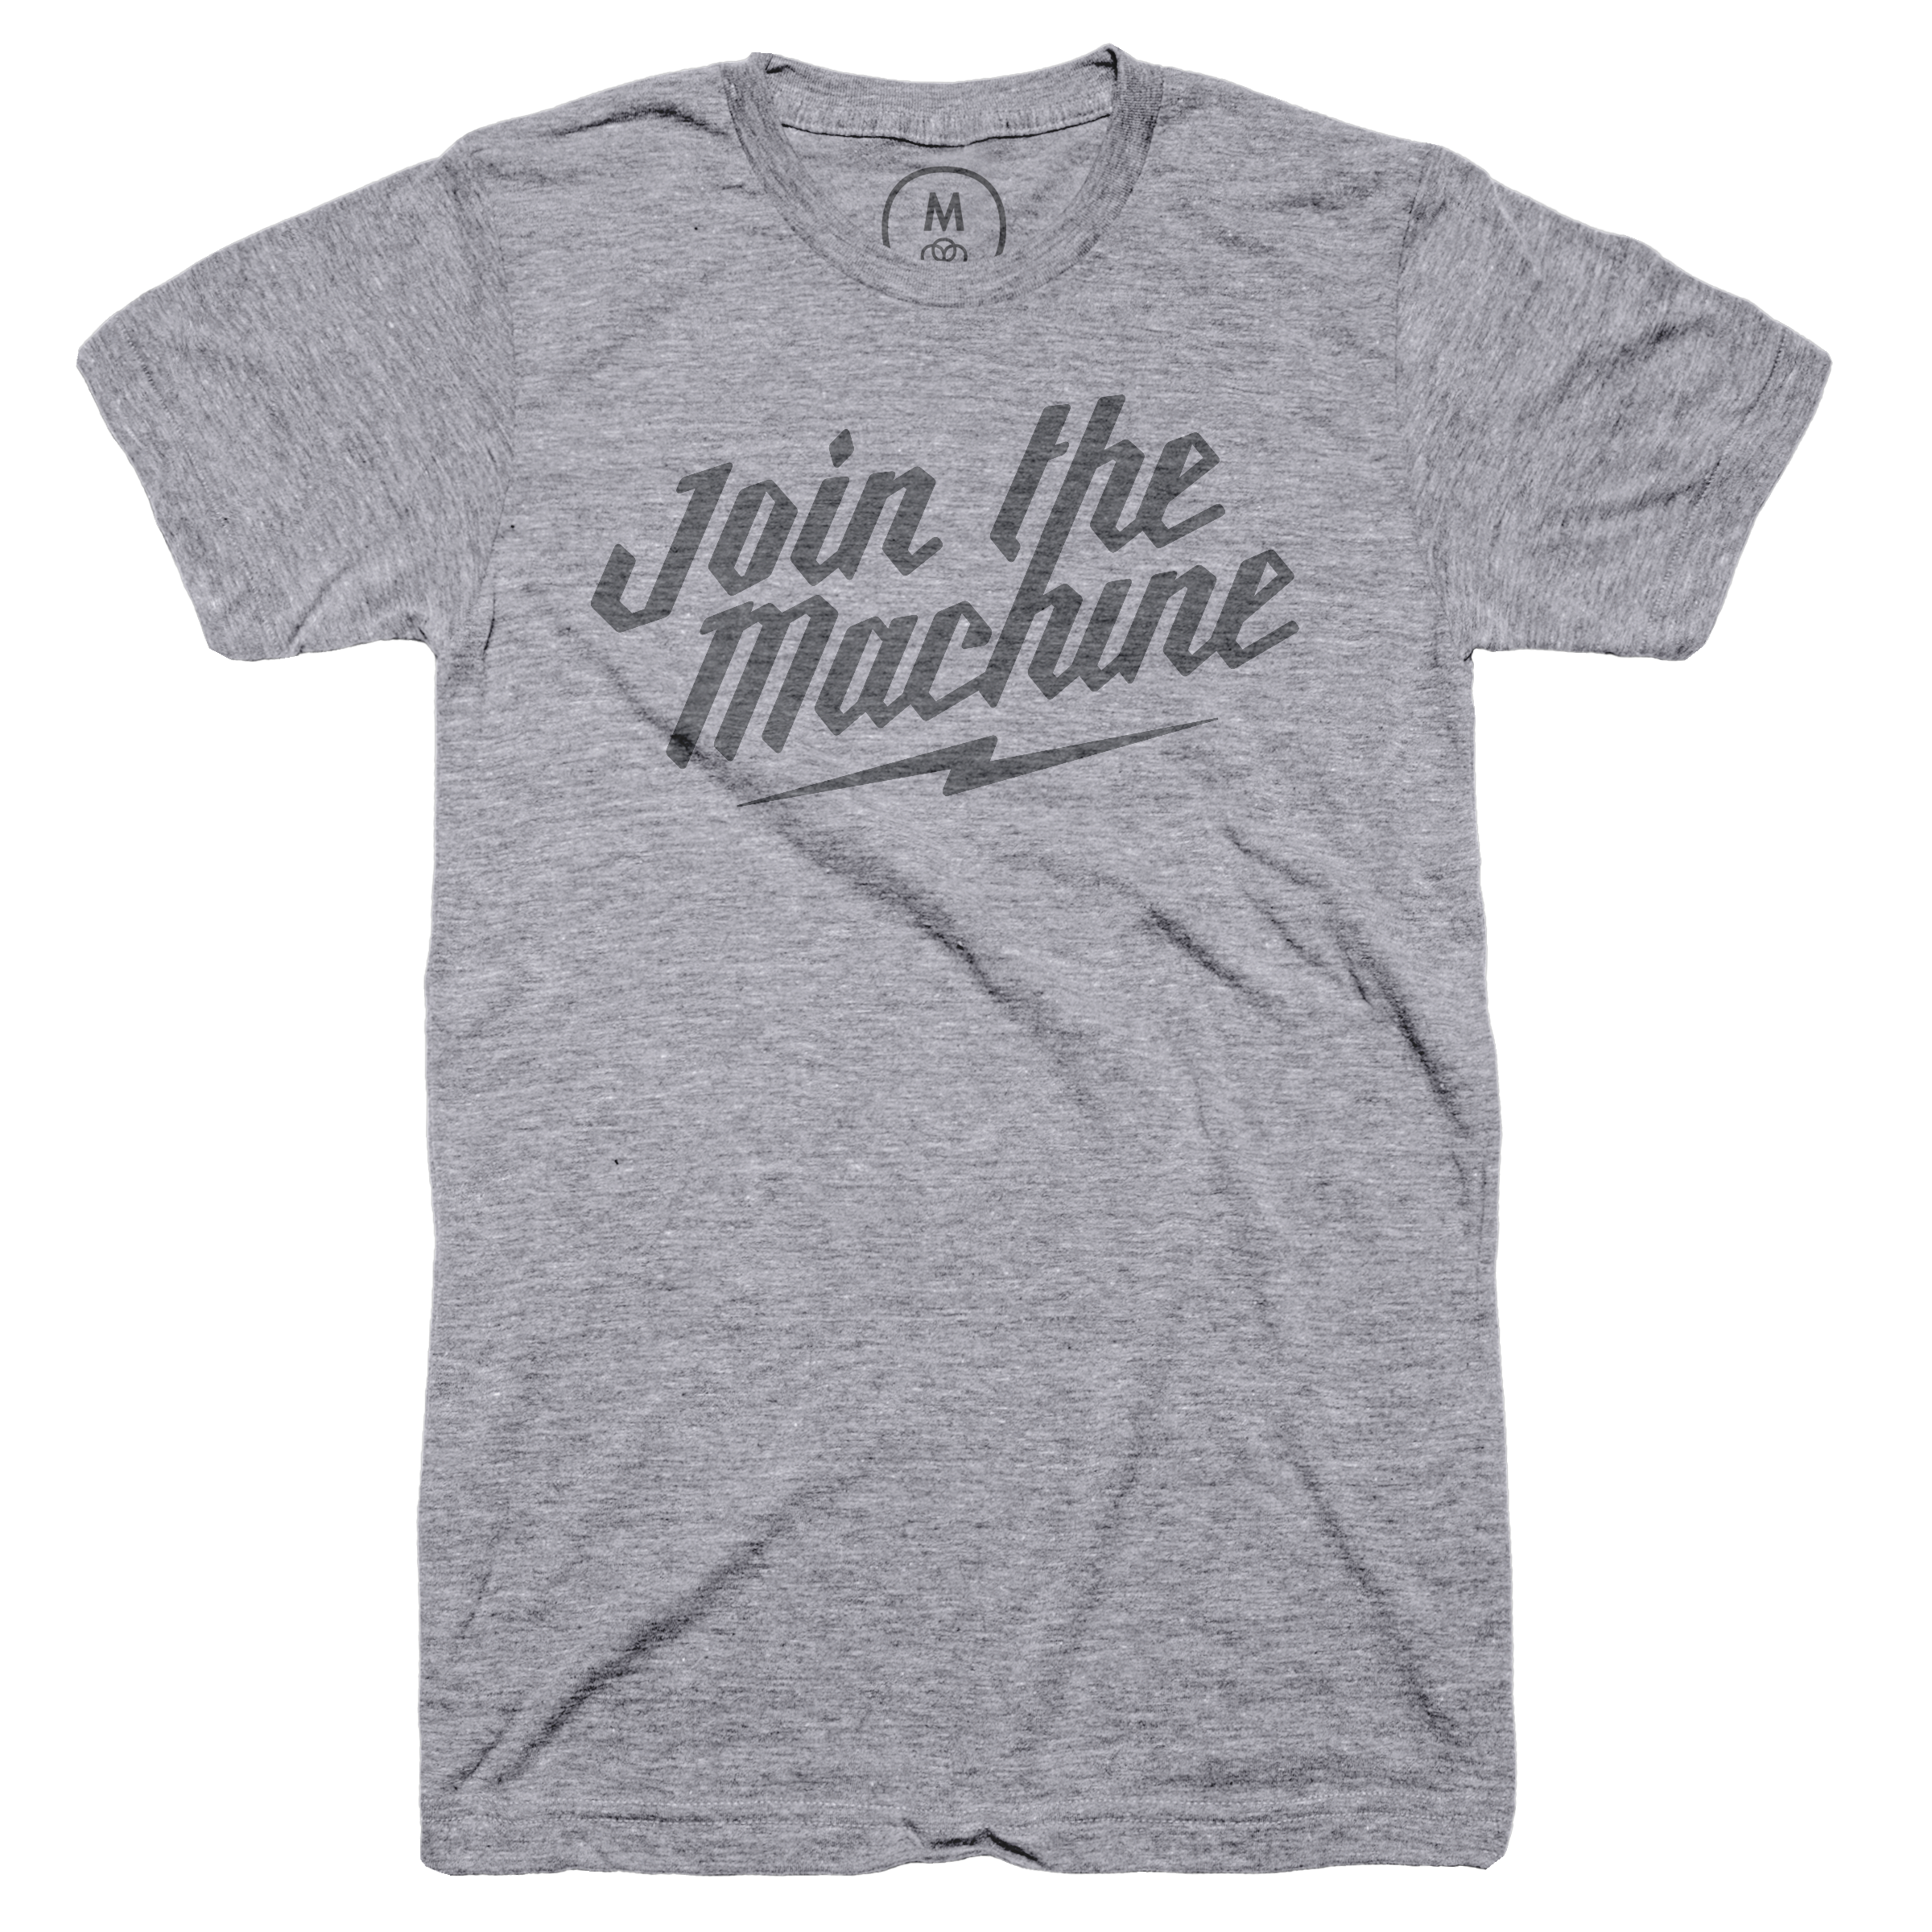 Join the Machine